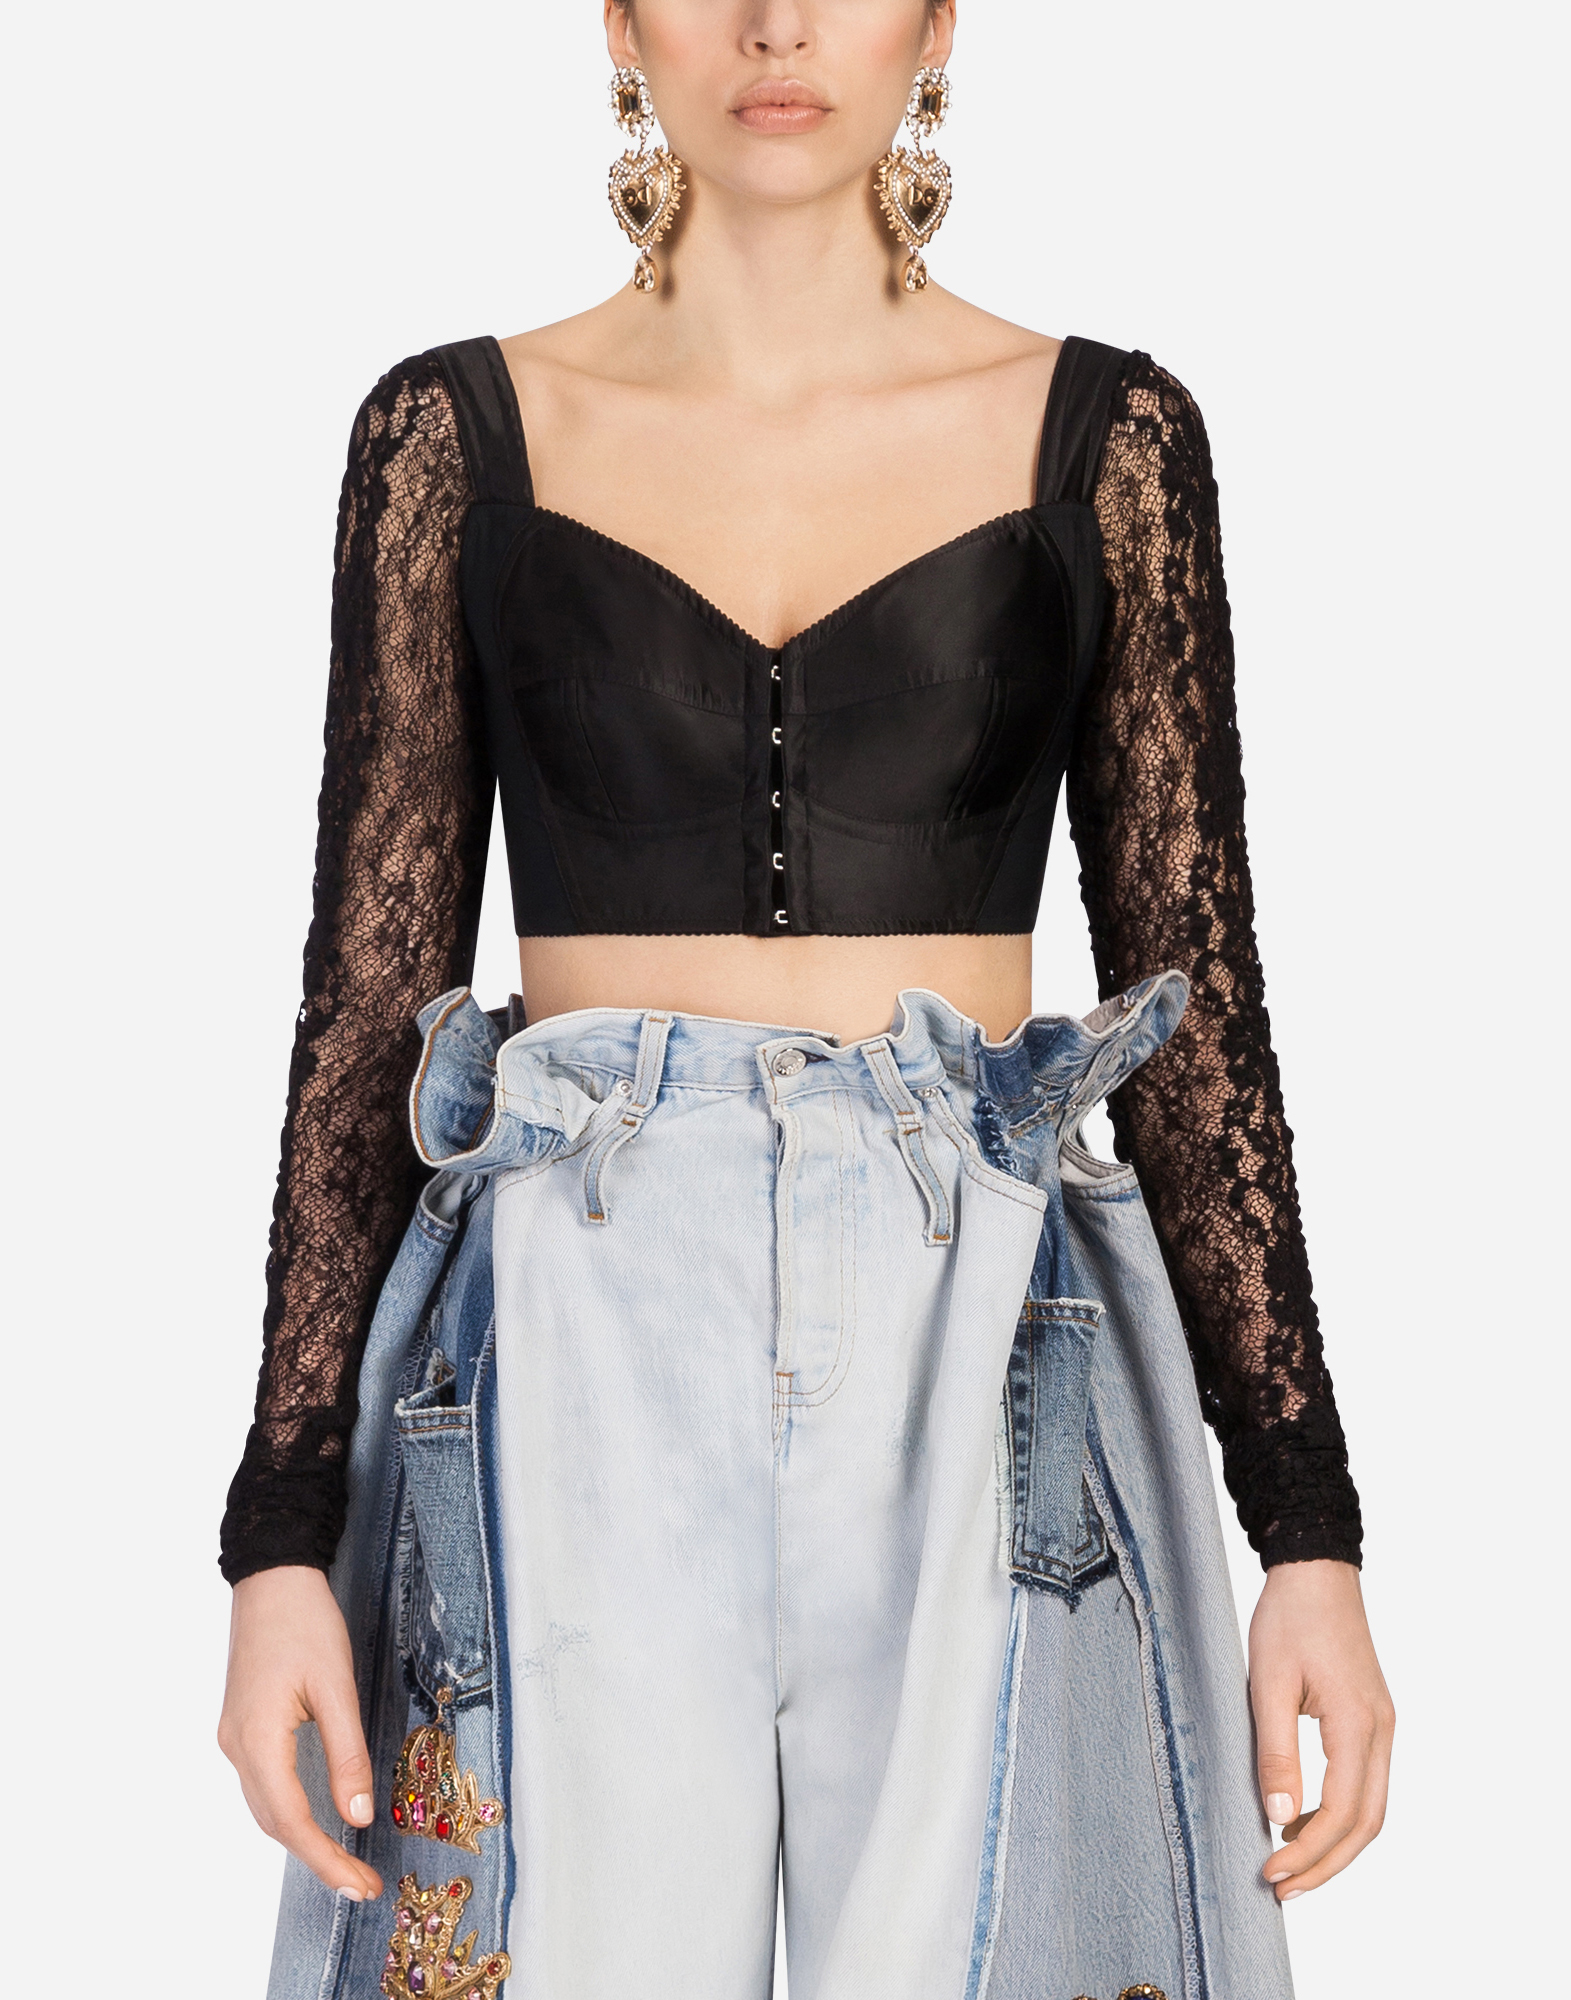 Dolce&Gabbana TOP IN SATIN AND LACE